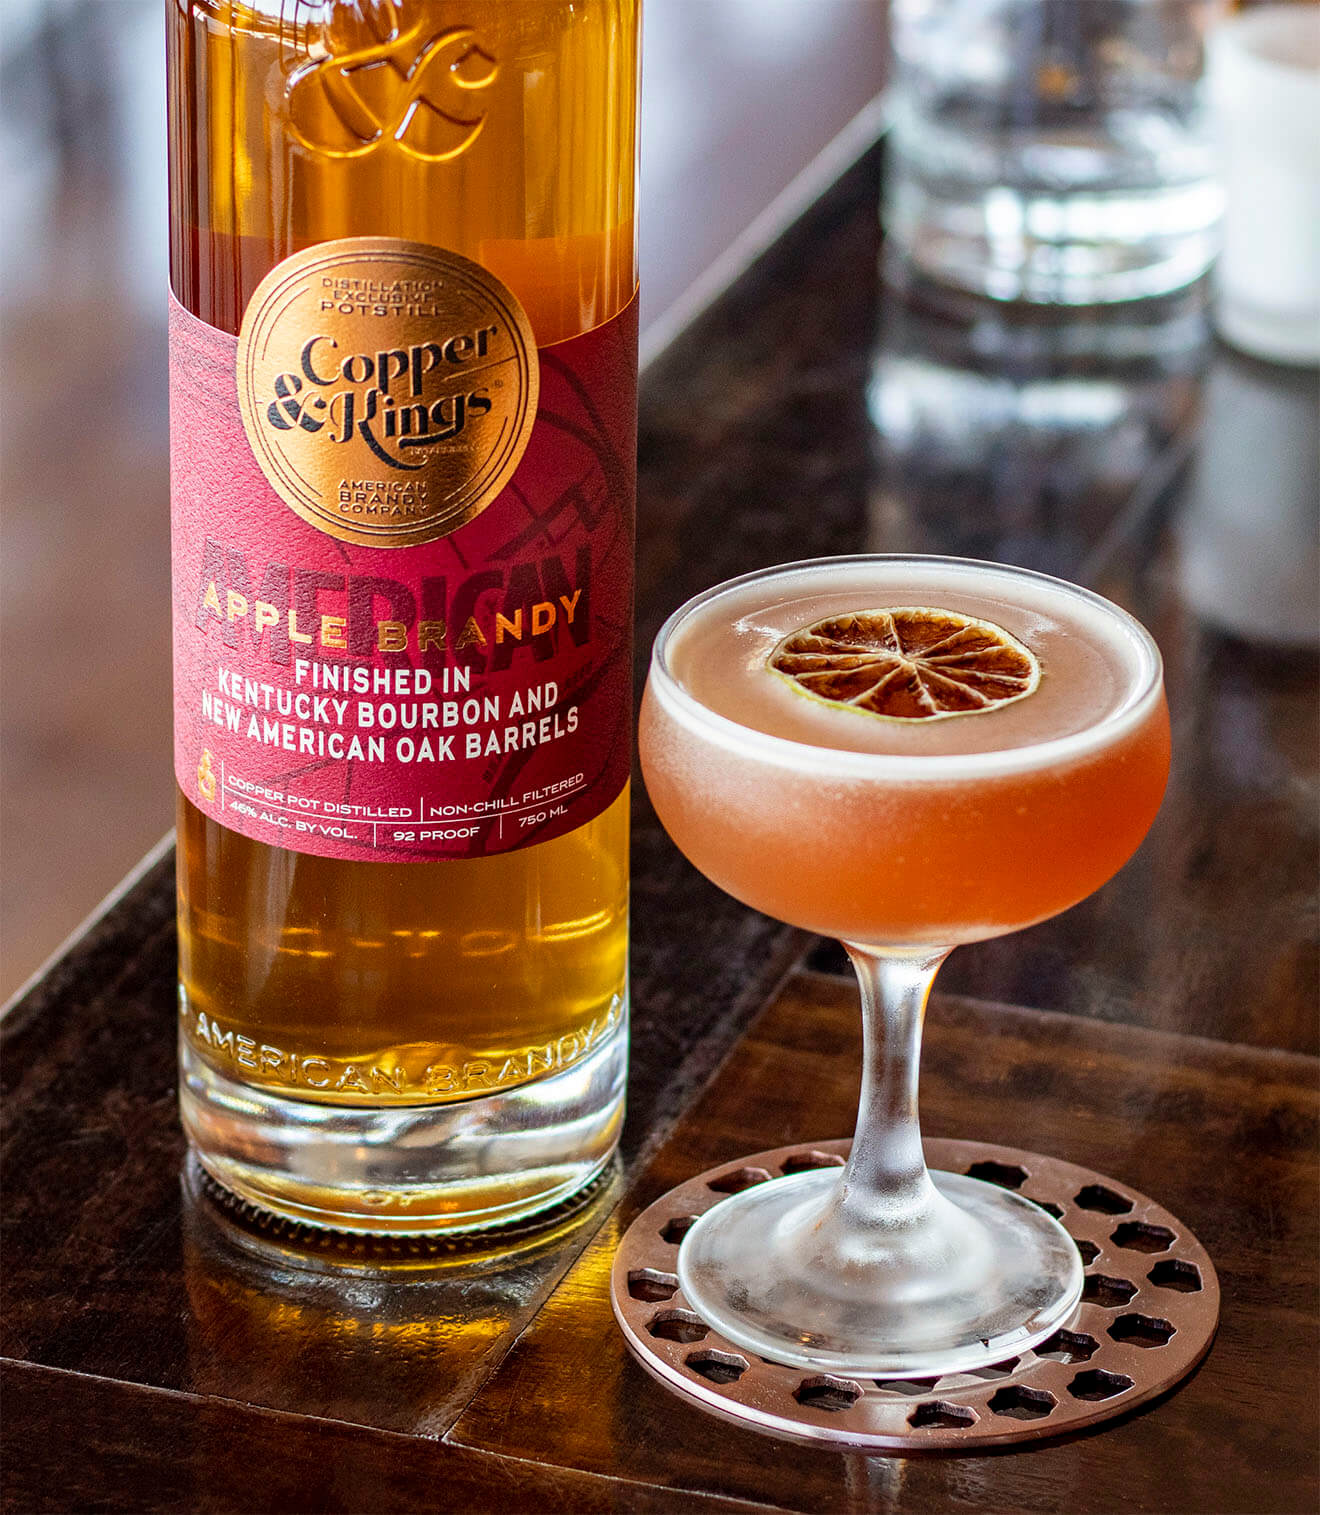 Craft Apple BrandyJack Rose, bottle and cocktail